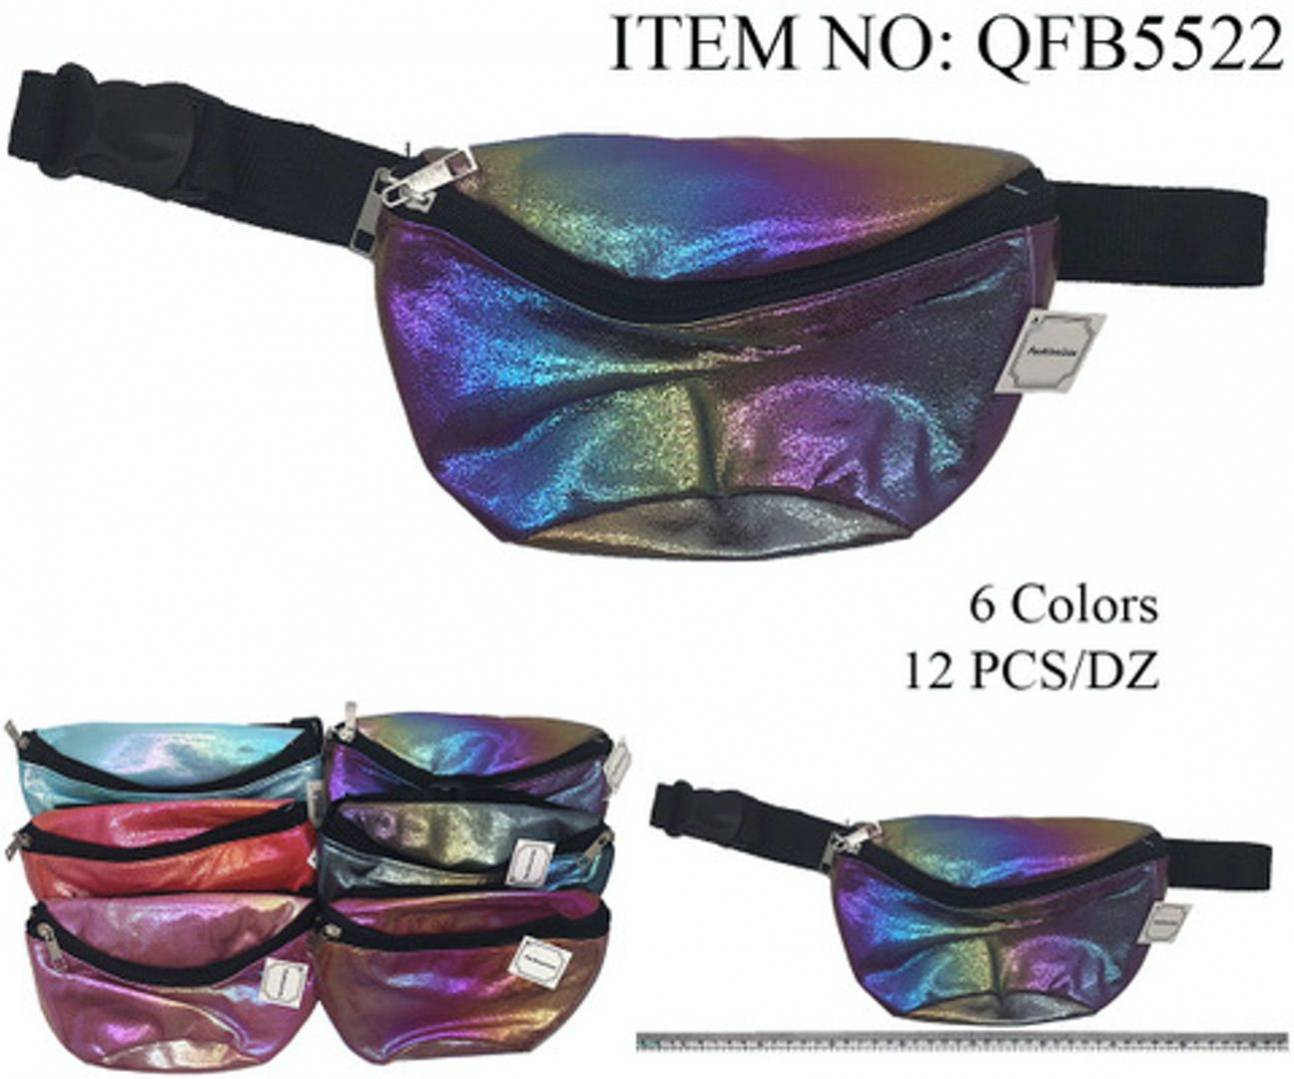 802c9d8a3 Via Trading | Liquidation of Master Case Fanny Packs